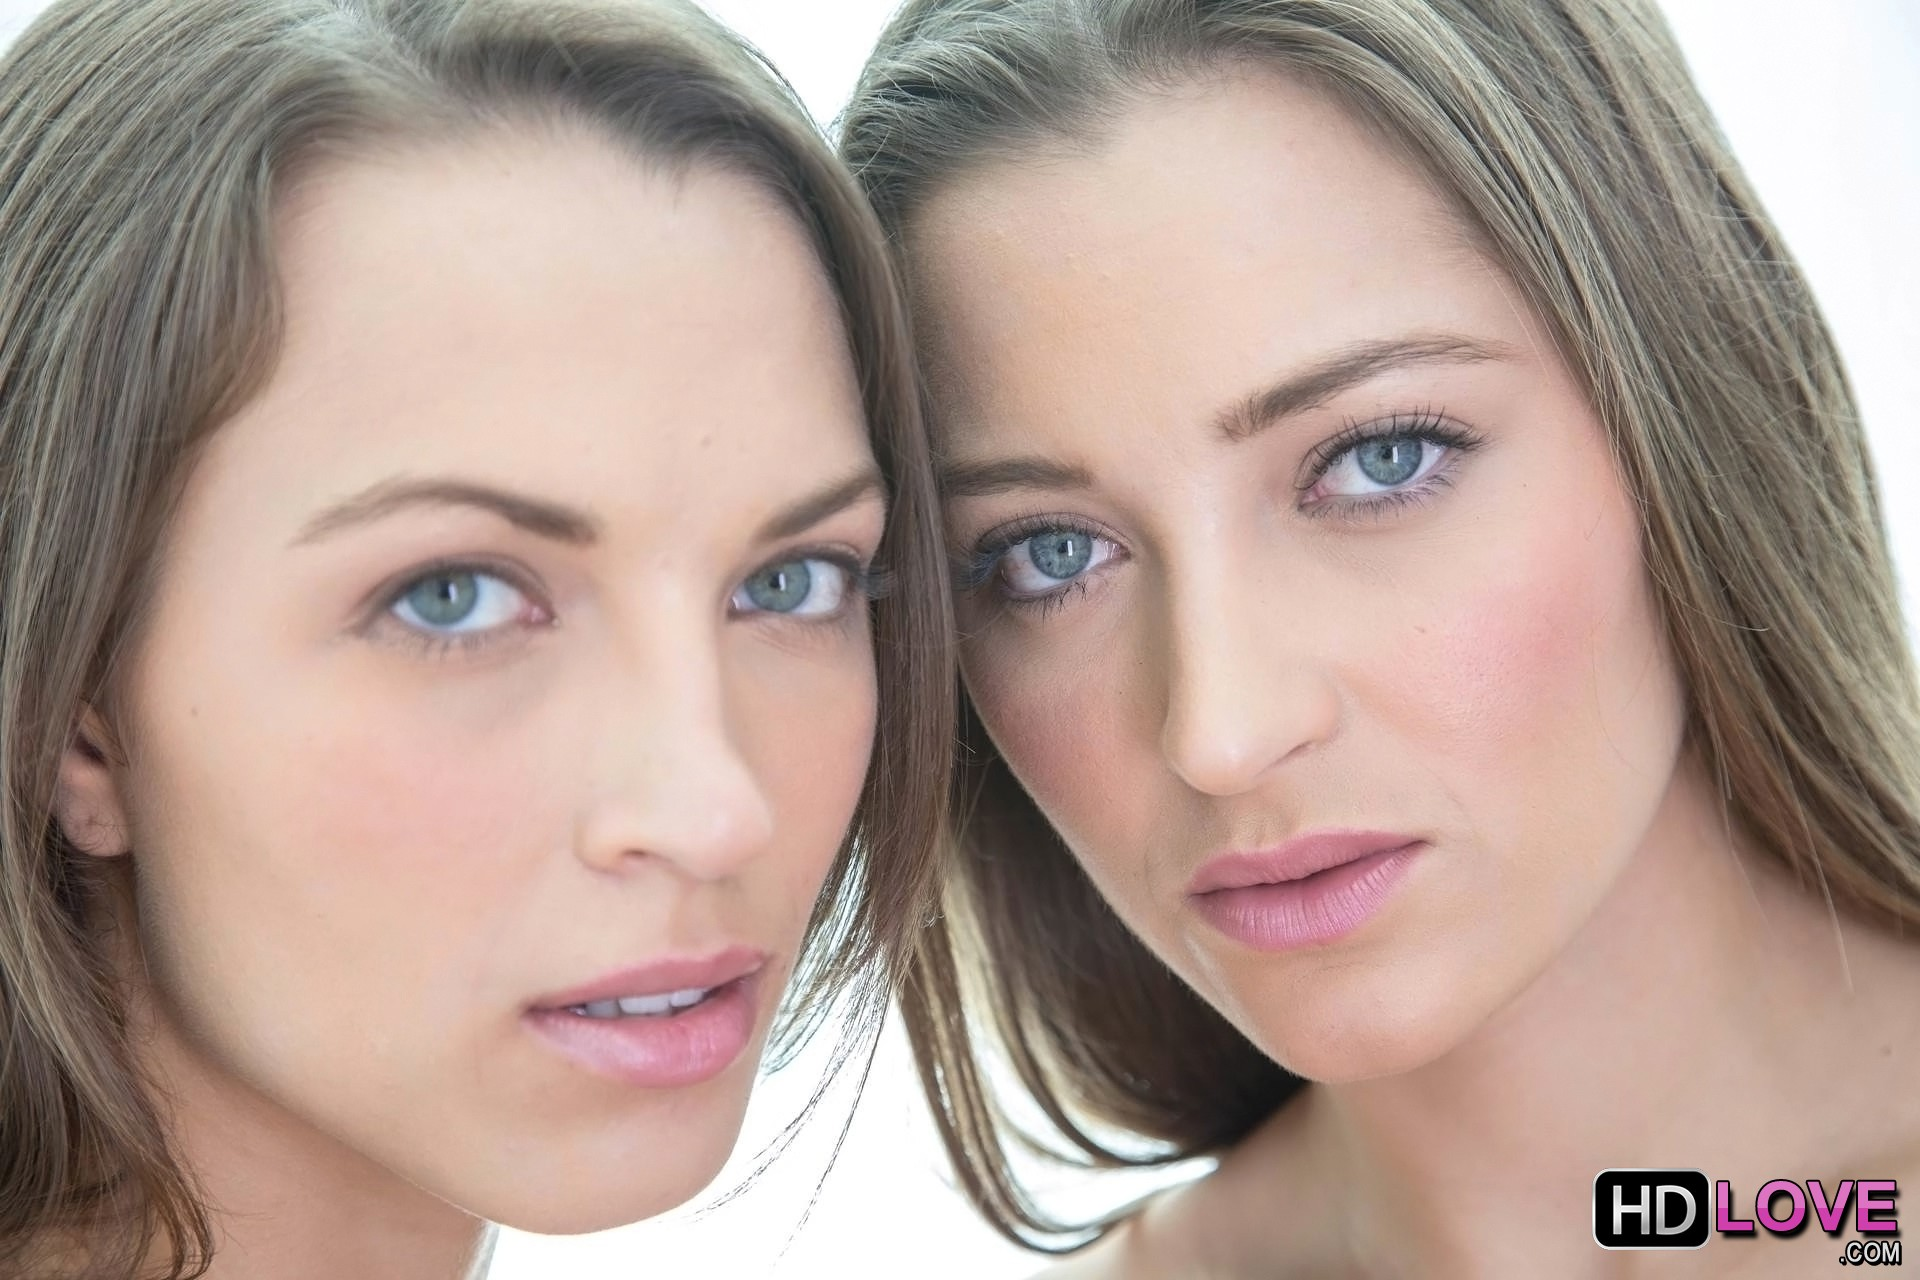 Dani Daniels and Lily Love - Heavy Pampering - HD Love 46814